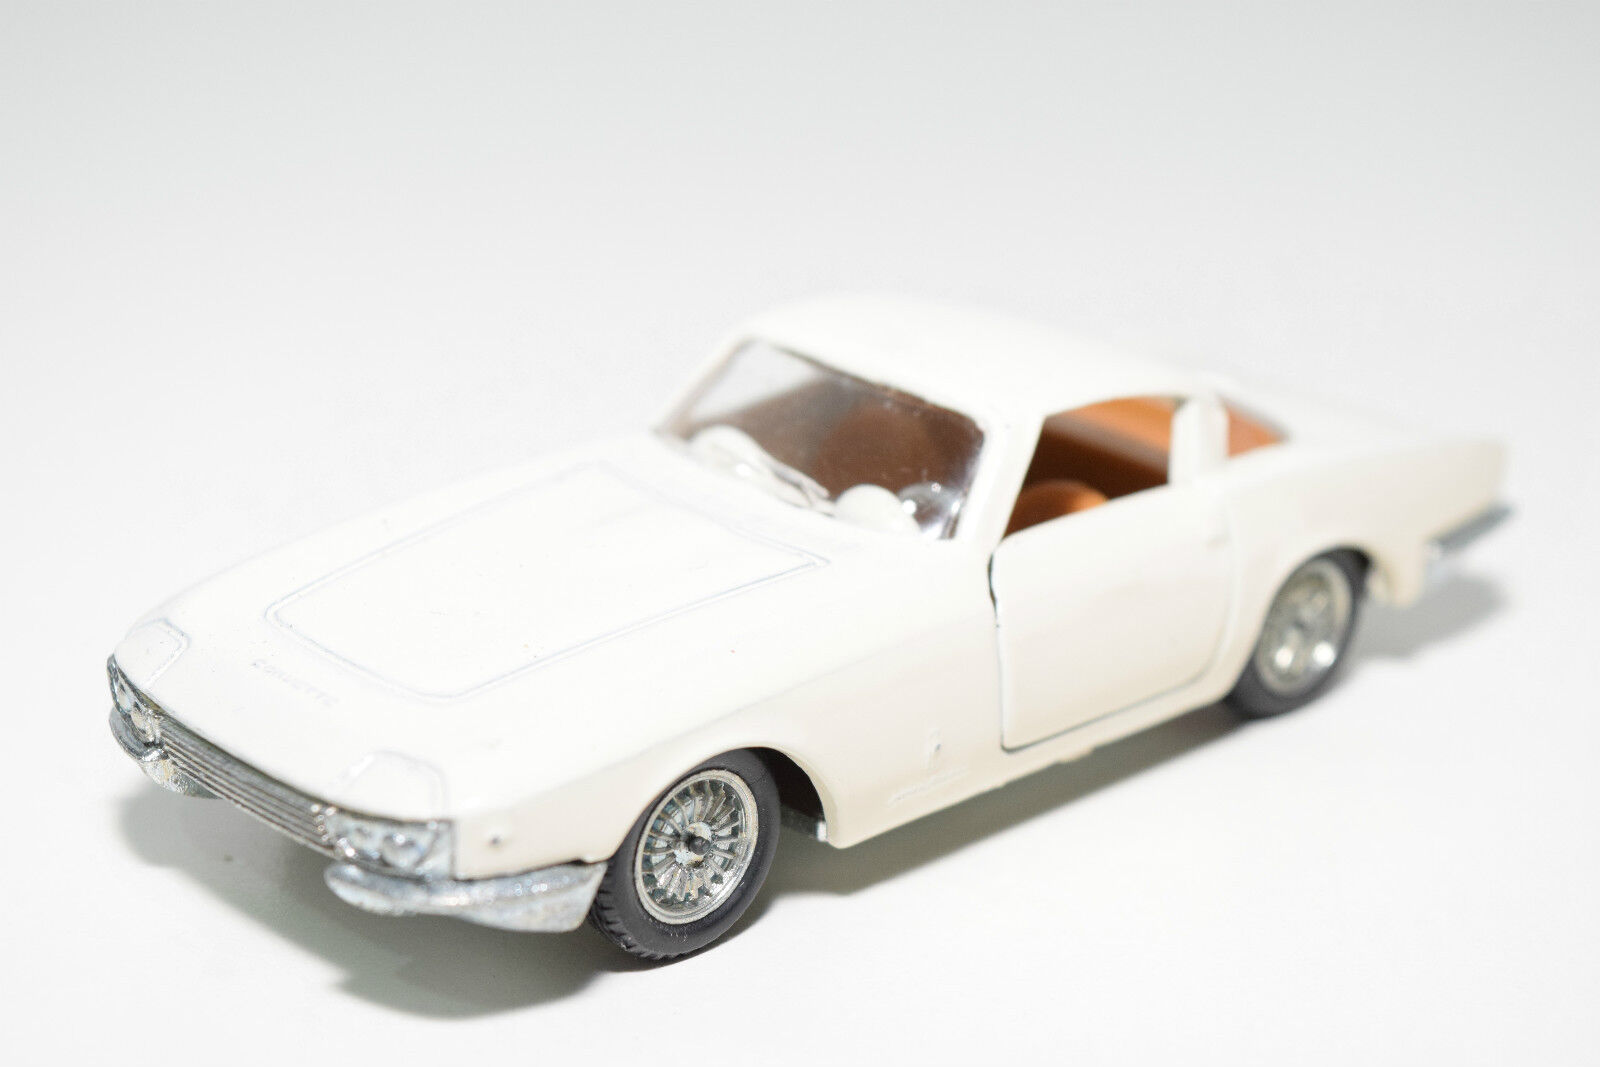 POLITOYS EXPORT 556 CHEVROLET CORVETTE RONDINE CREAM NEAR MINT CONDITION